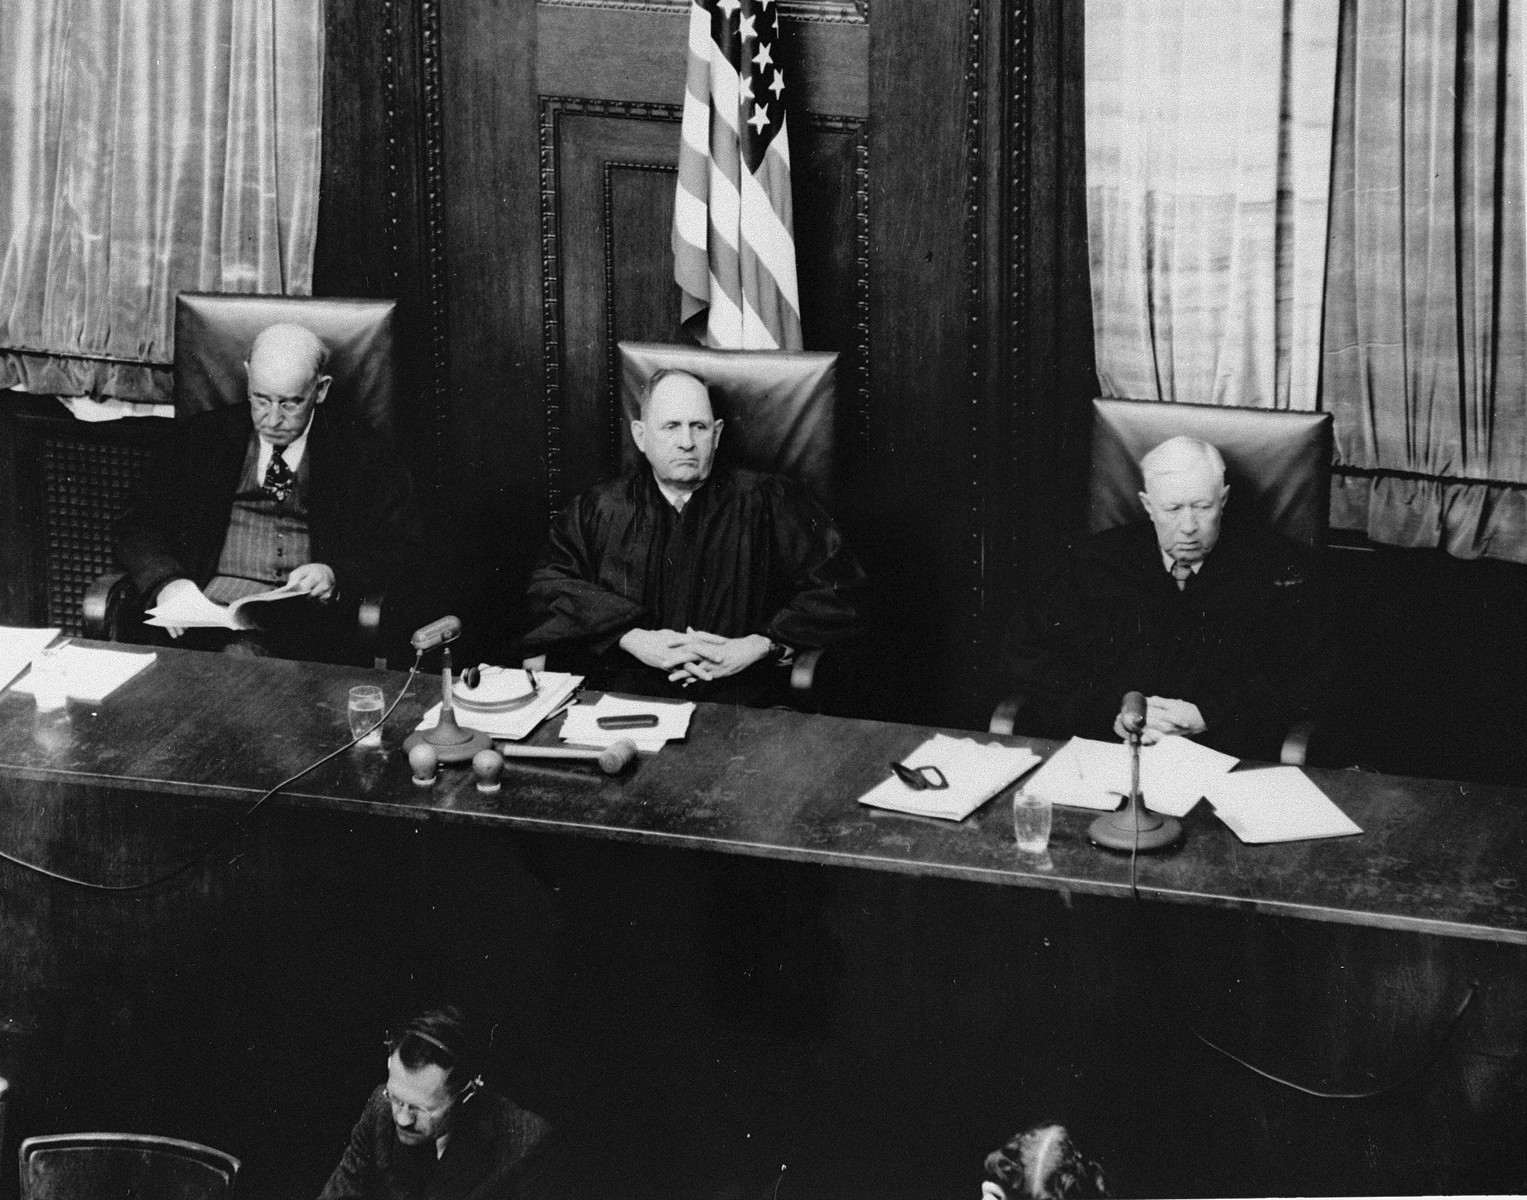 The judges of Military Tribunal I hearing the RuSHA Trial.    Pictured from left to right are: Daniel T. O'Connell, Lee B. Wyatt, and Johnson Tal Crawford.